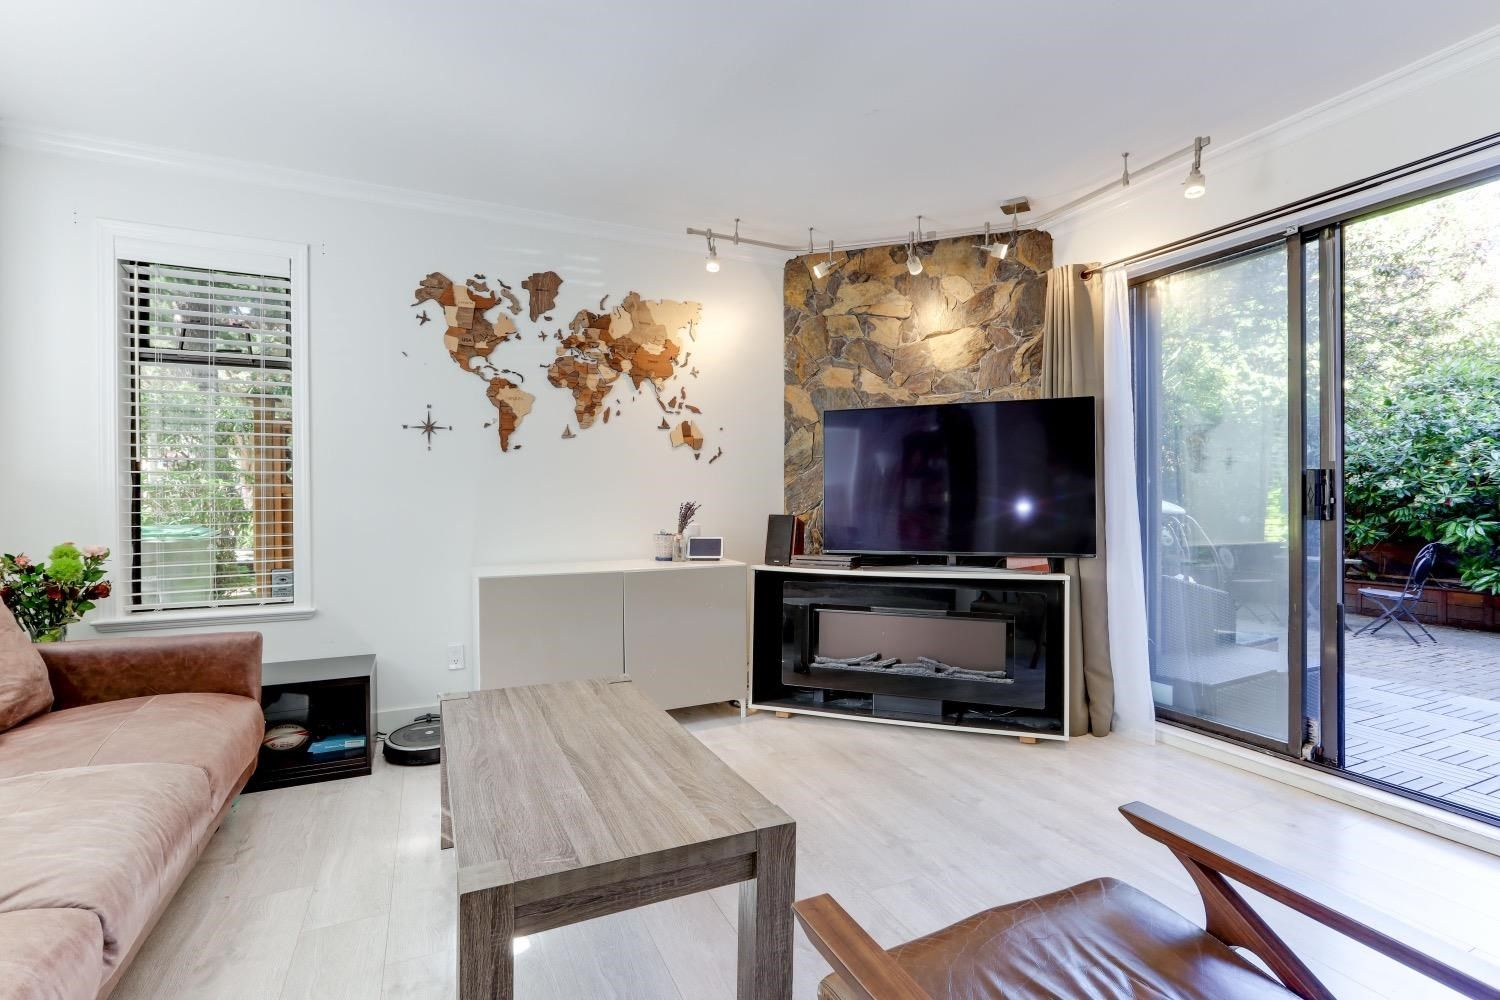 Main Photo: 2366 YEW Street in Vancouver: Kitsilano Condo for sale (Vancouver West)  : MLS®# R2606904